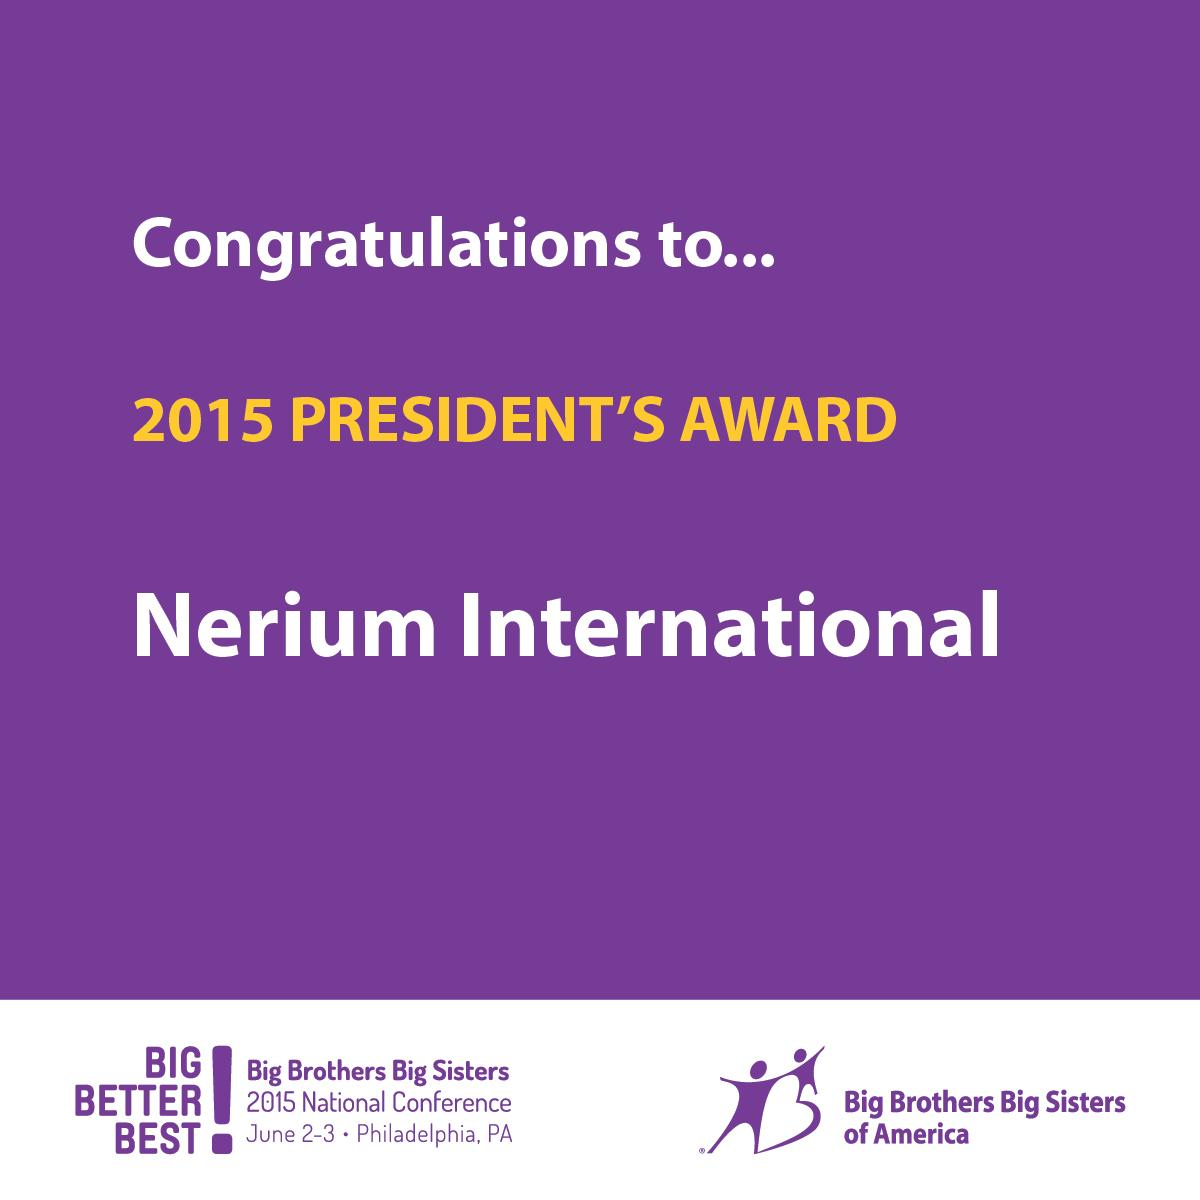 Congratulations to @NeriumIntl for receiving the 2015 Presidents Award! #BBBSTogether http://t.co/HptNj67X6J